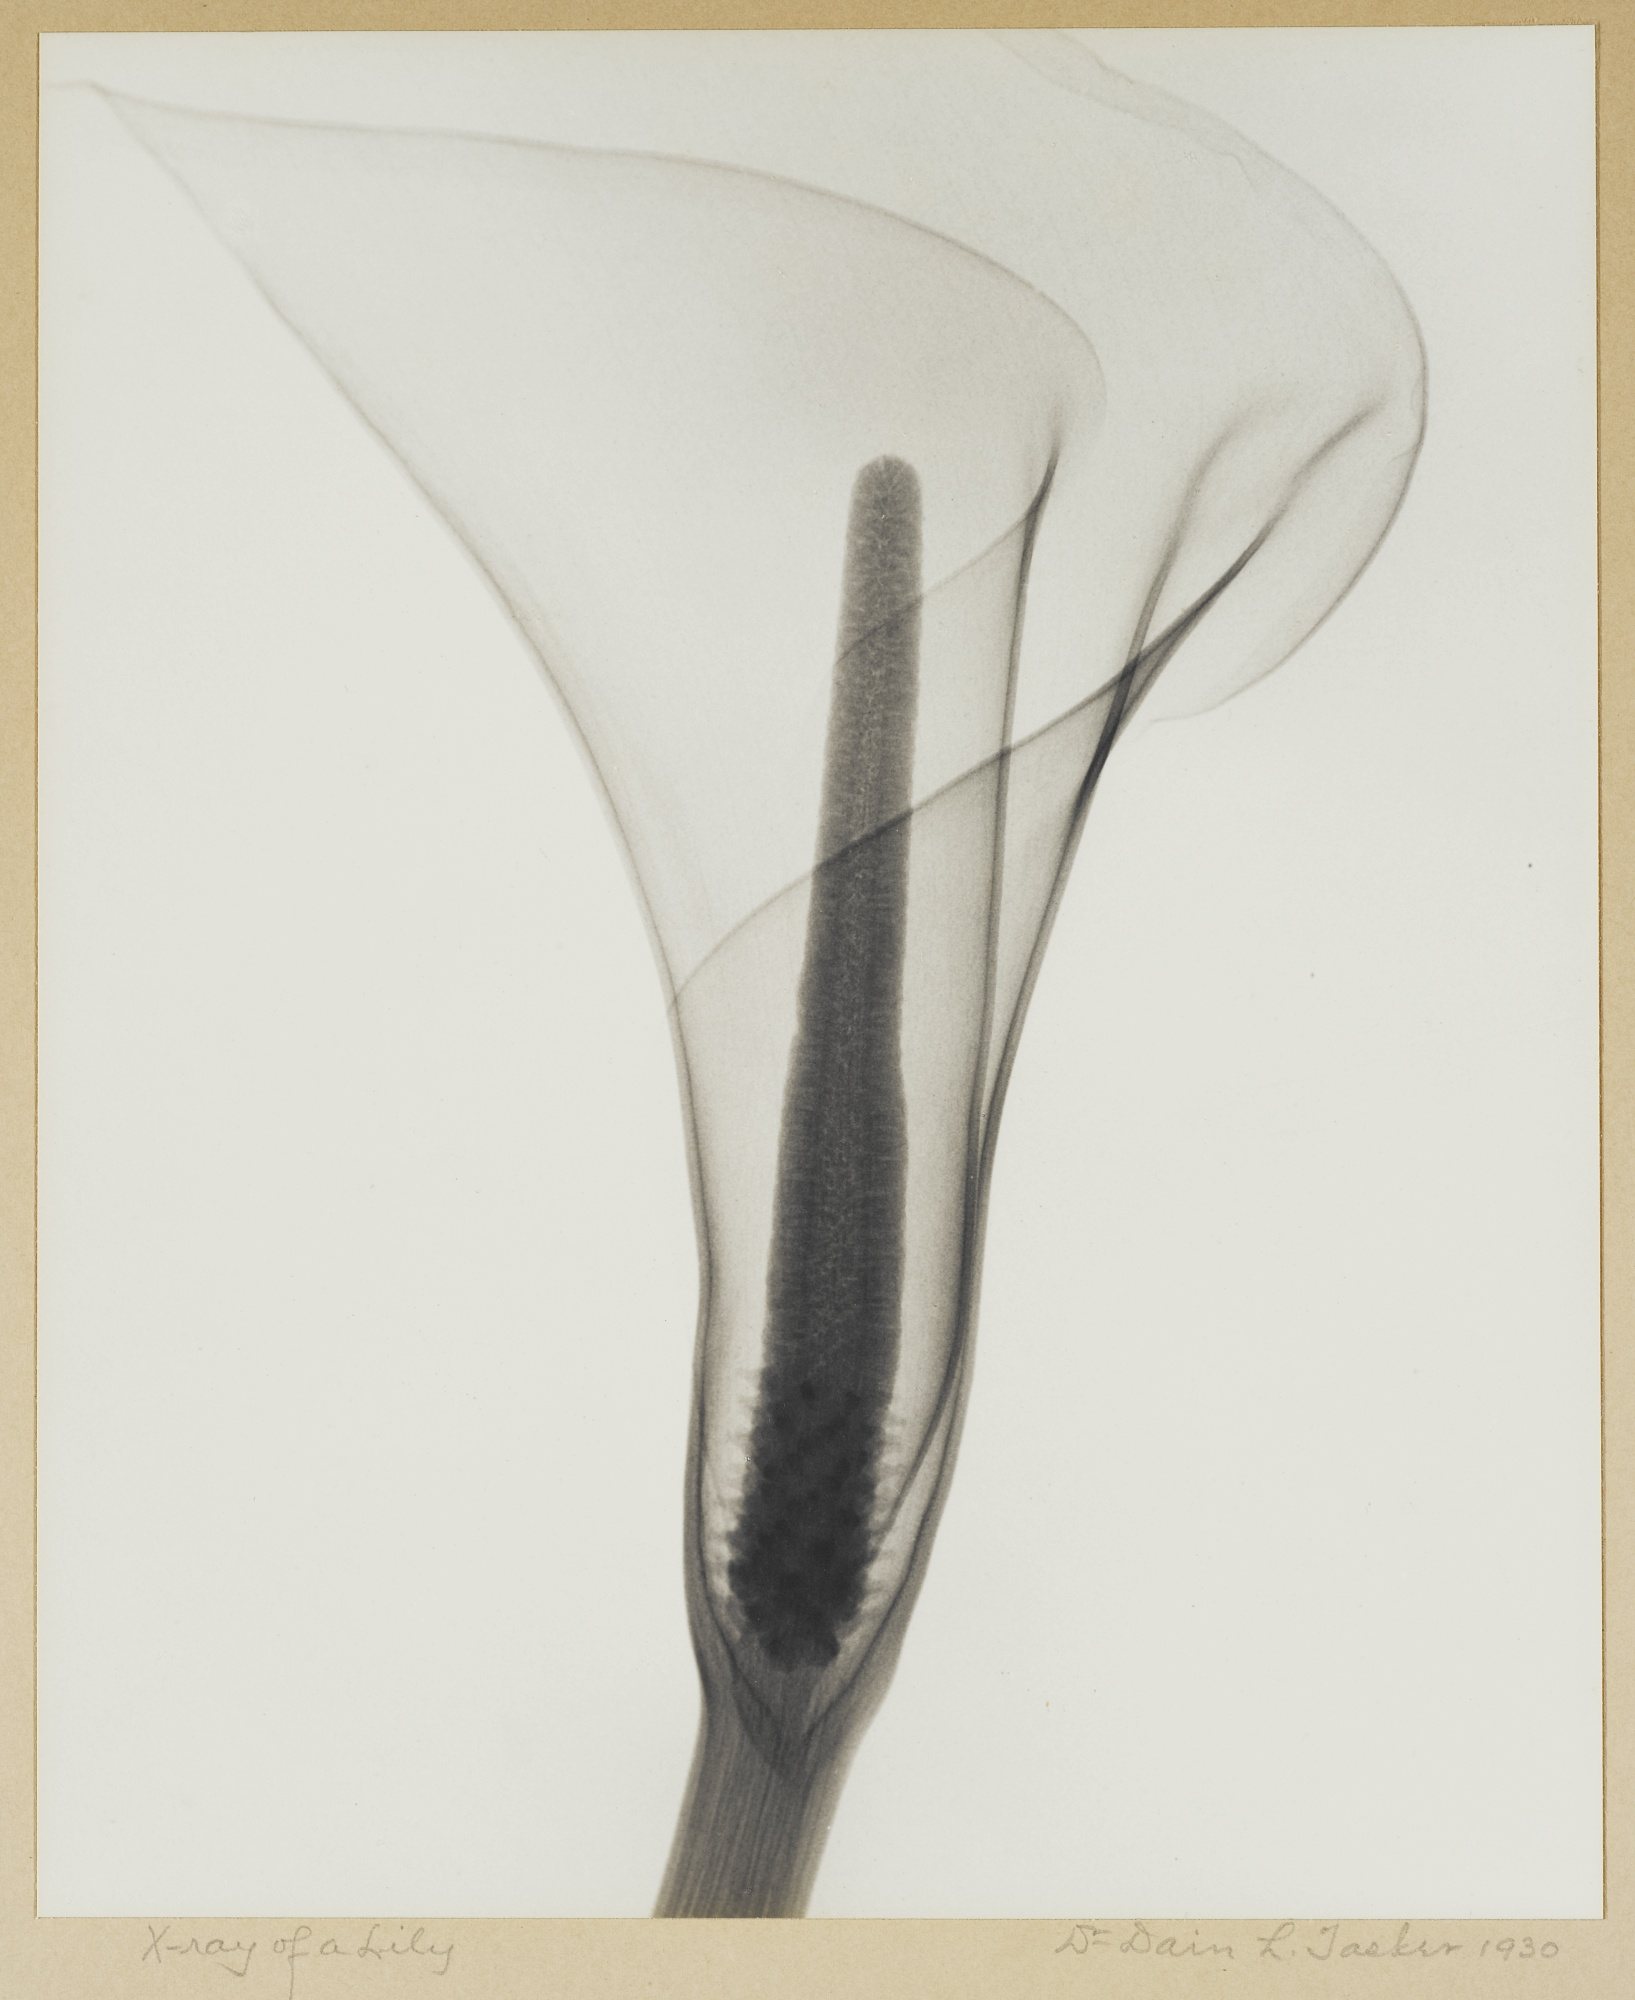 Tasker-X-ray-of-a-Lily-c.-1930s